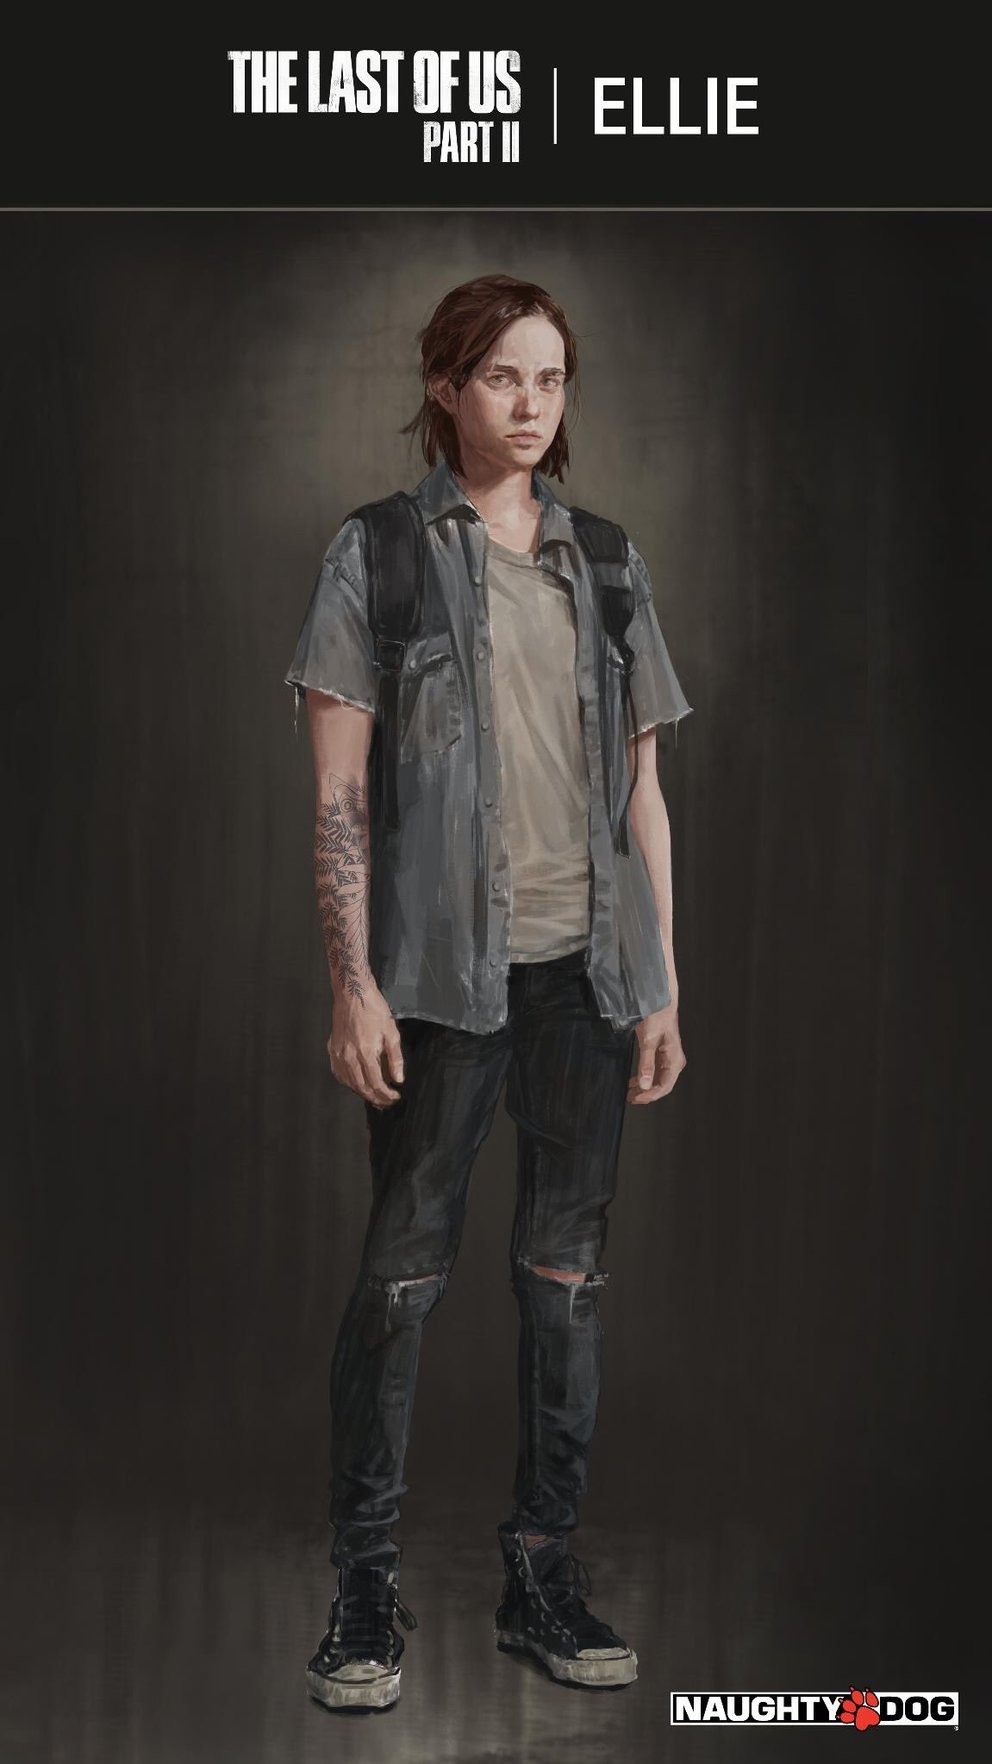 Last-of-Us-2-Ellie-Artwork